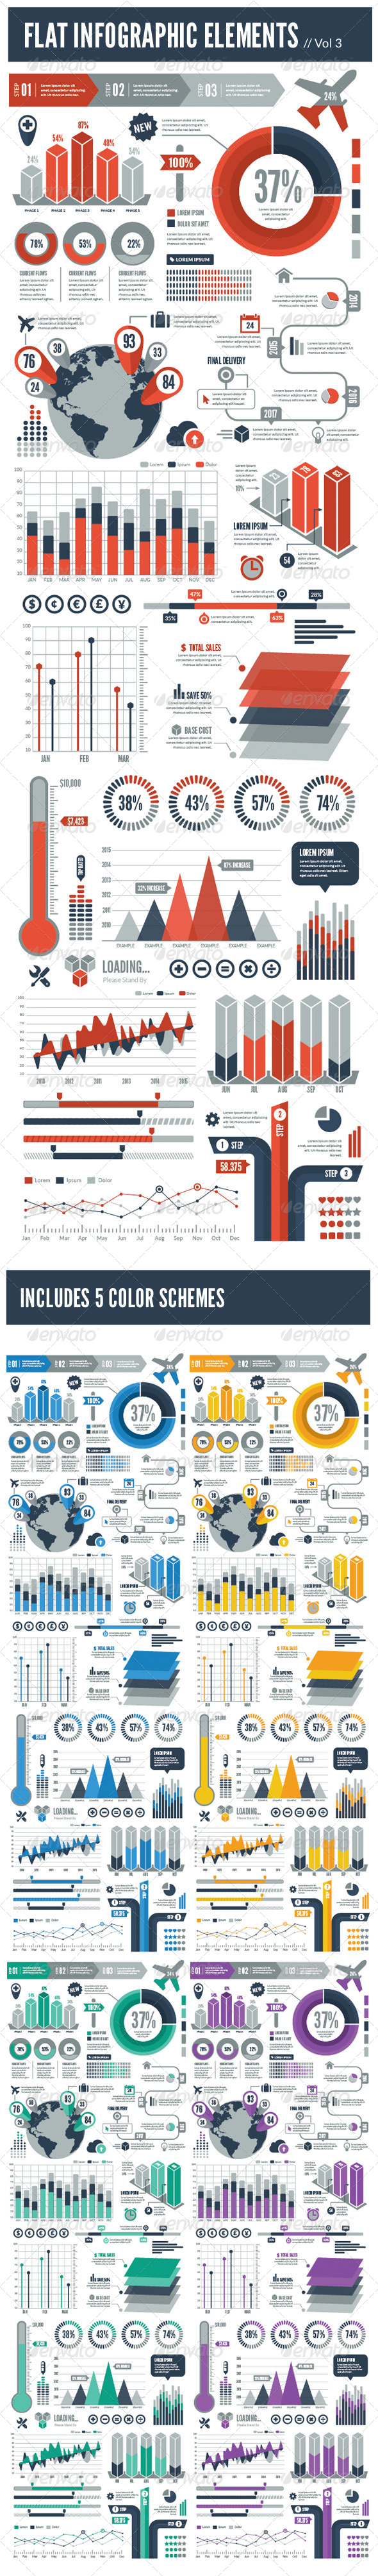 GraphicRiver Flat Vector Infographic Elements Vol 3 7942030